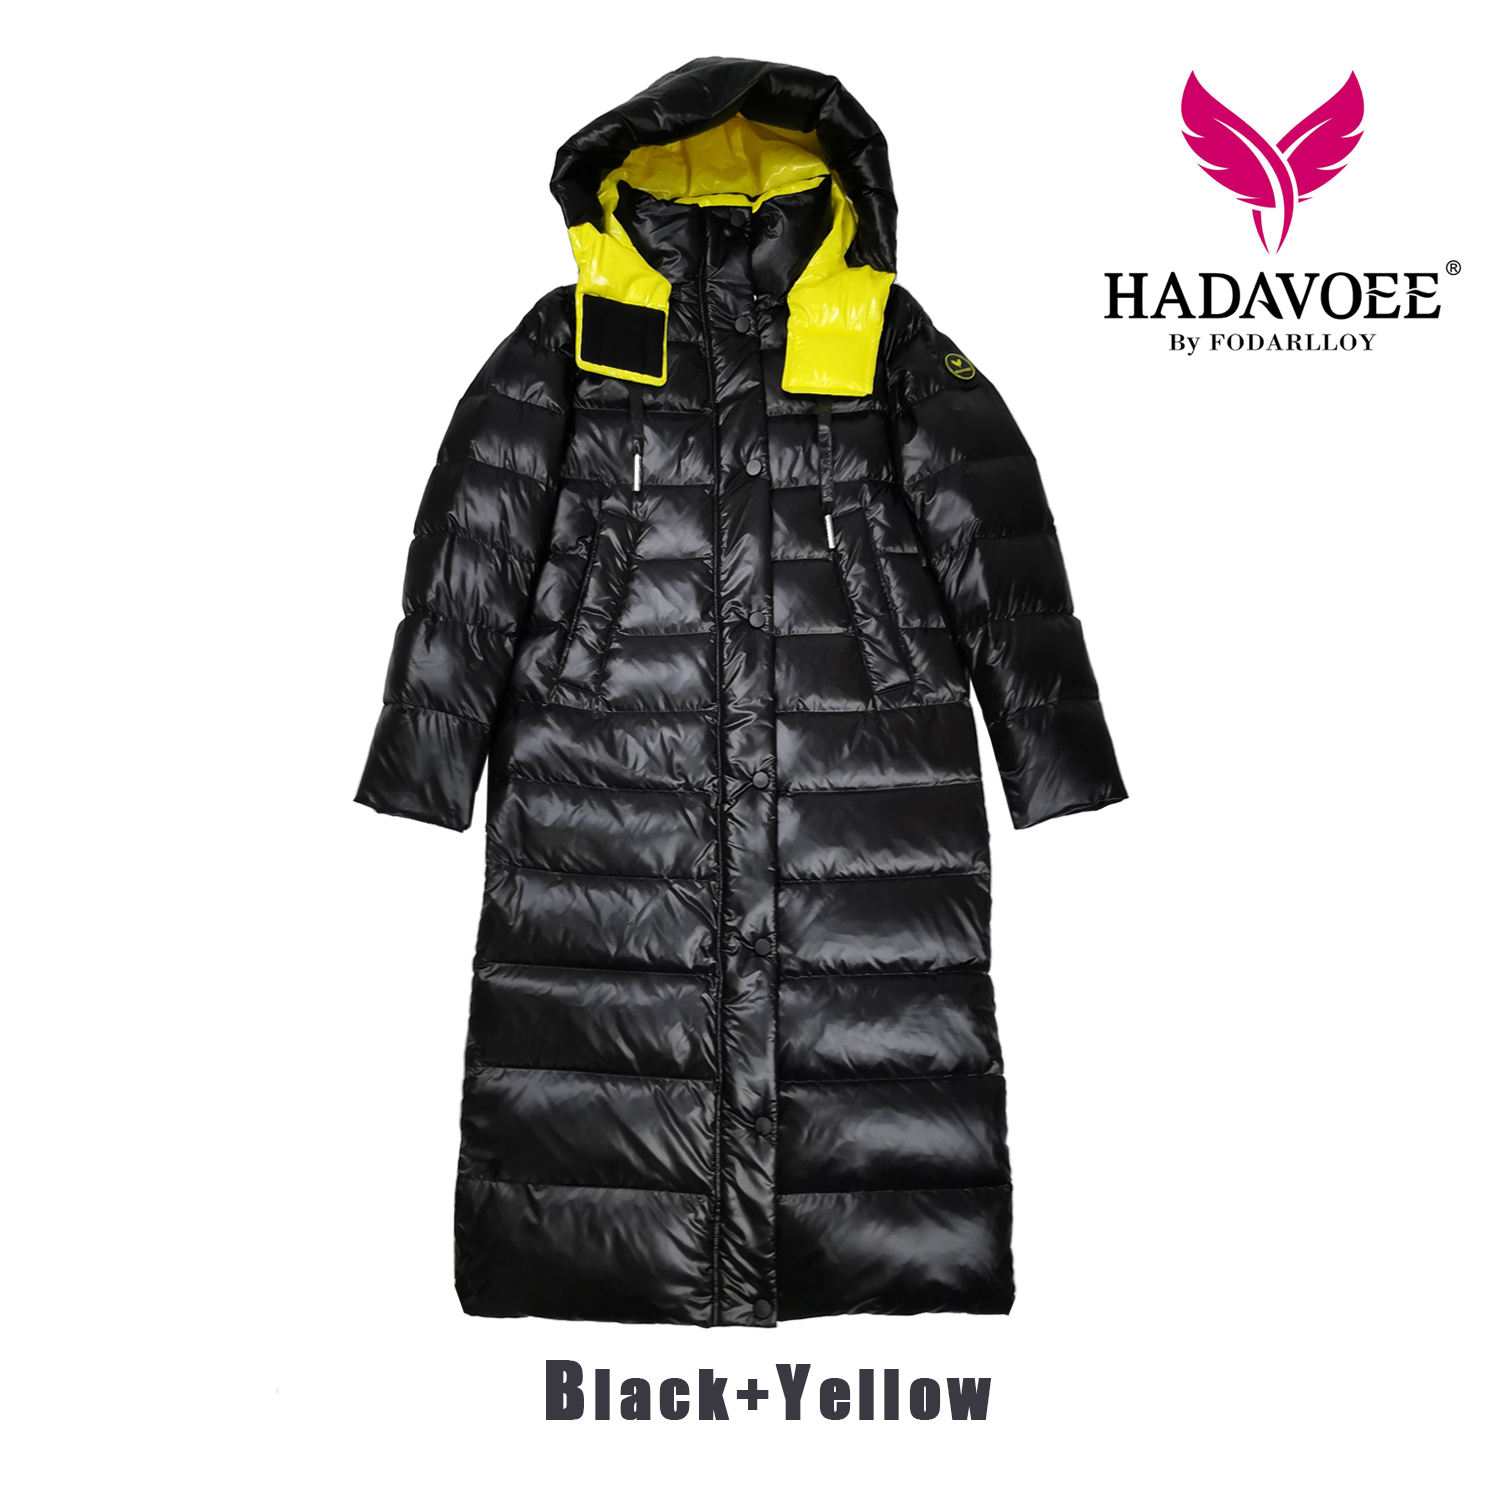 2019 Fashion winter   Coat   Jacket Women's Hooded Warm Parkas Hight Quality Female Hooded jacket New Winter Collection